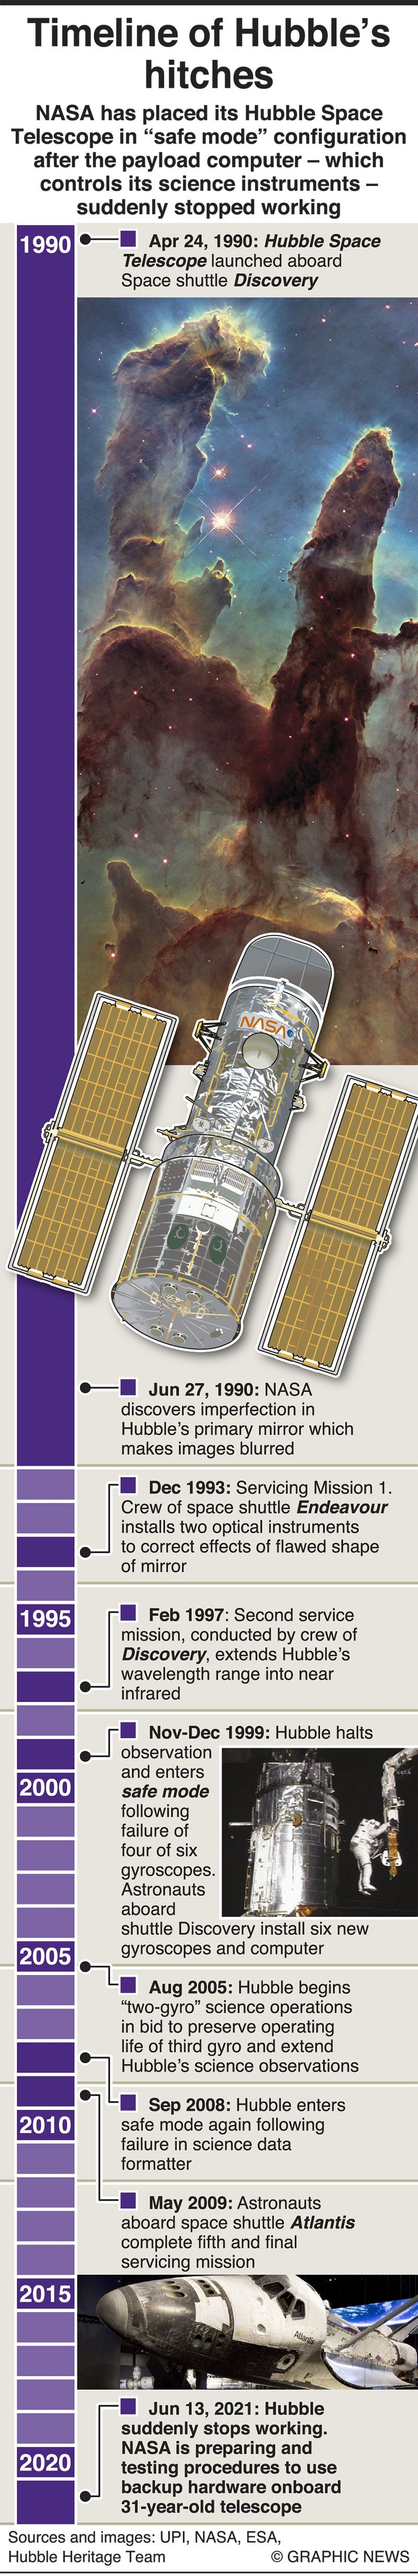 Infographics: NASA prepares to switch Hubble to backup hardware